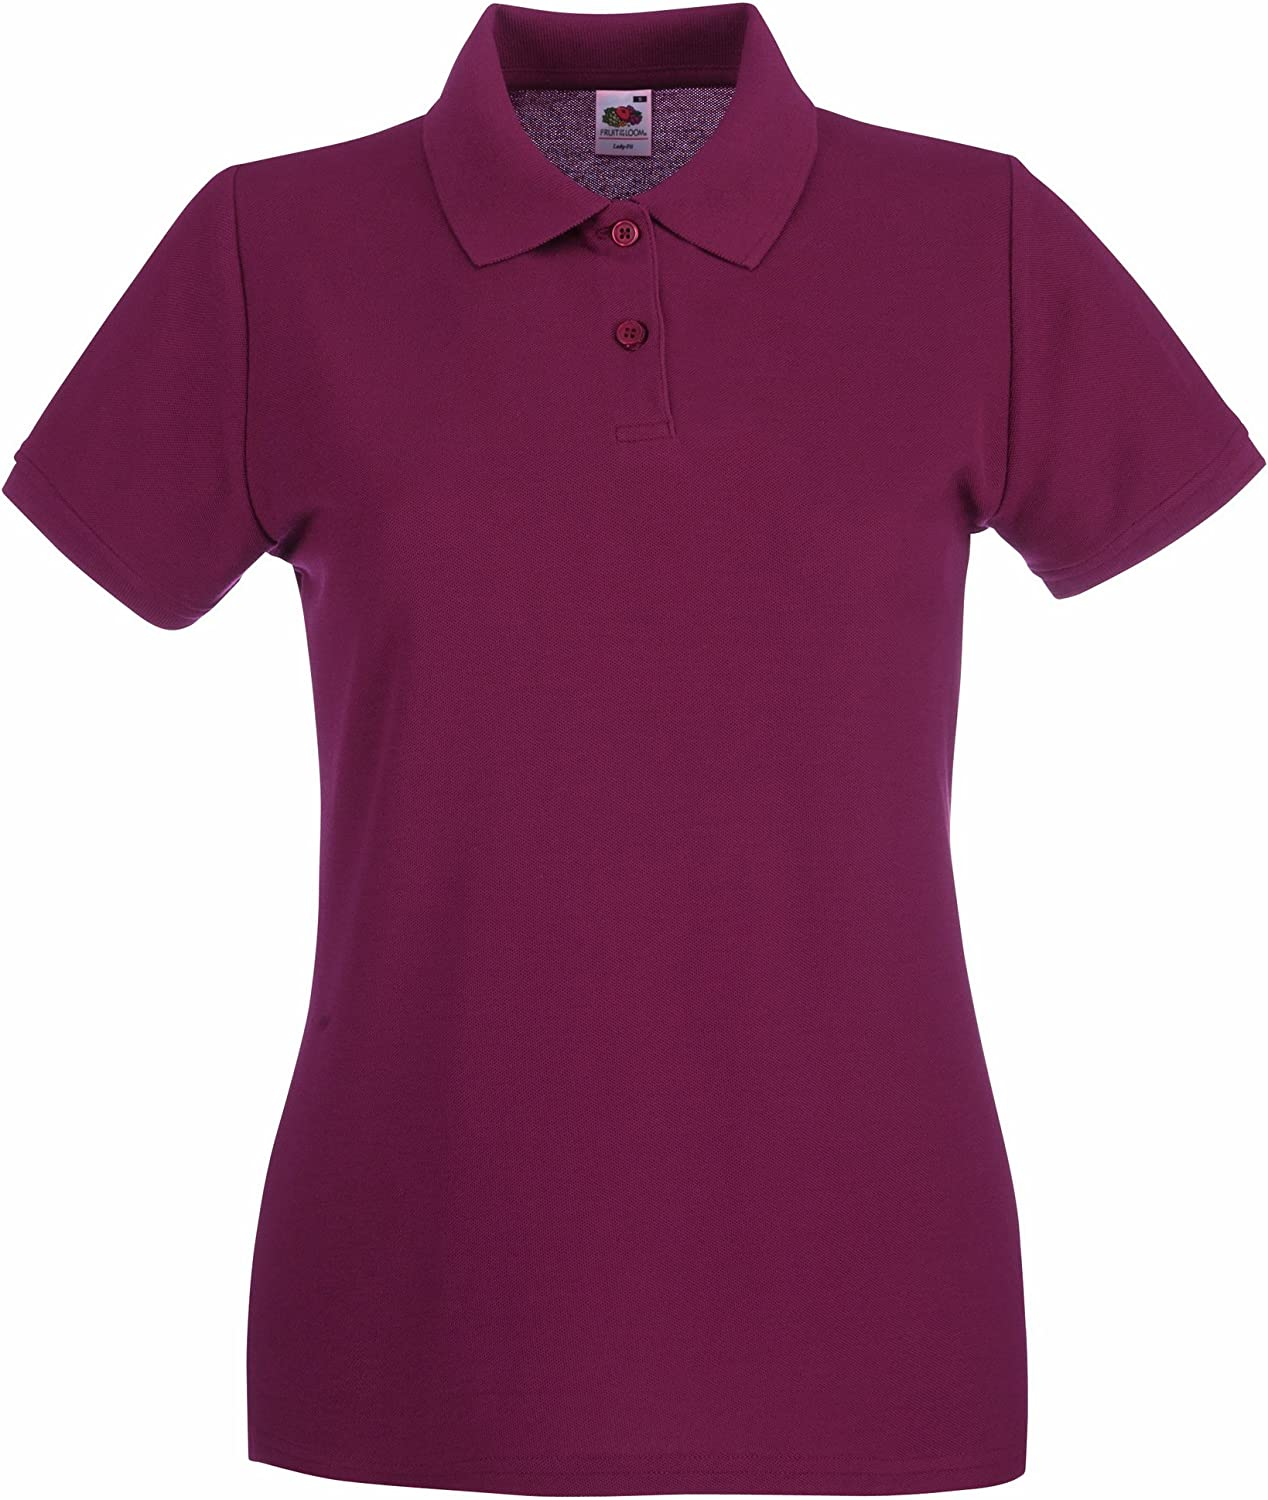 Fruit Of The Loom Donna Polo 100/% Cotone S Bianco